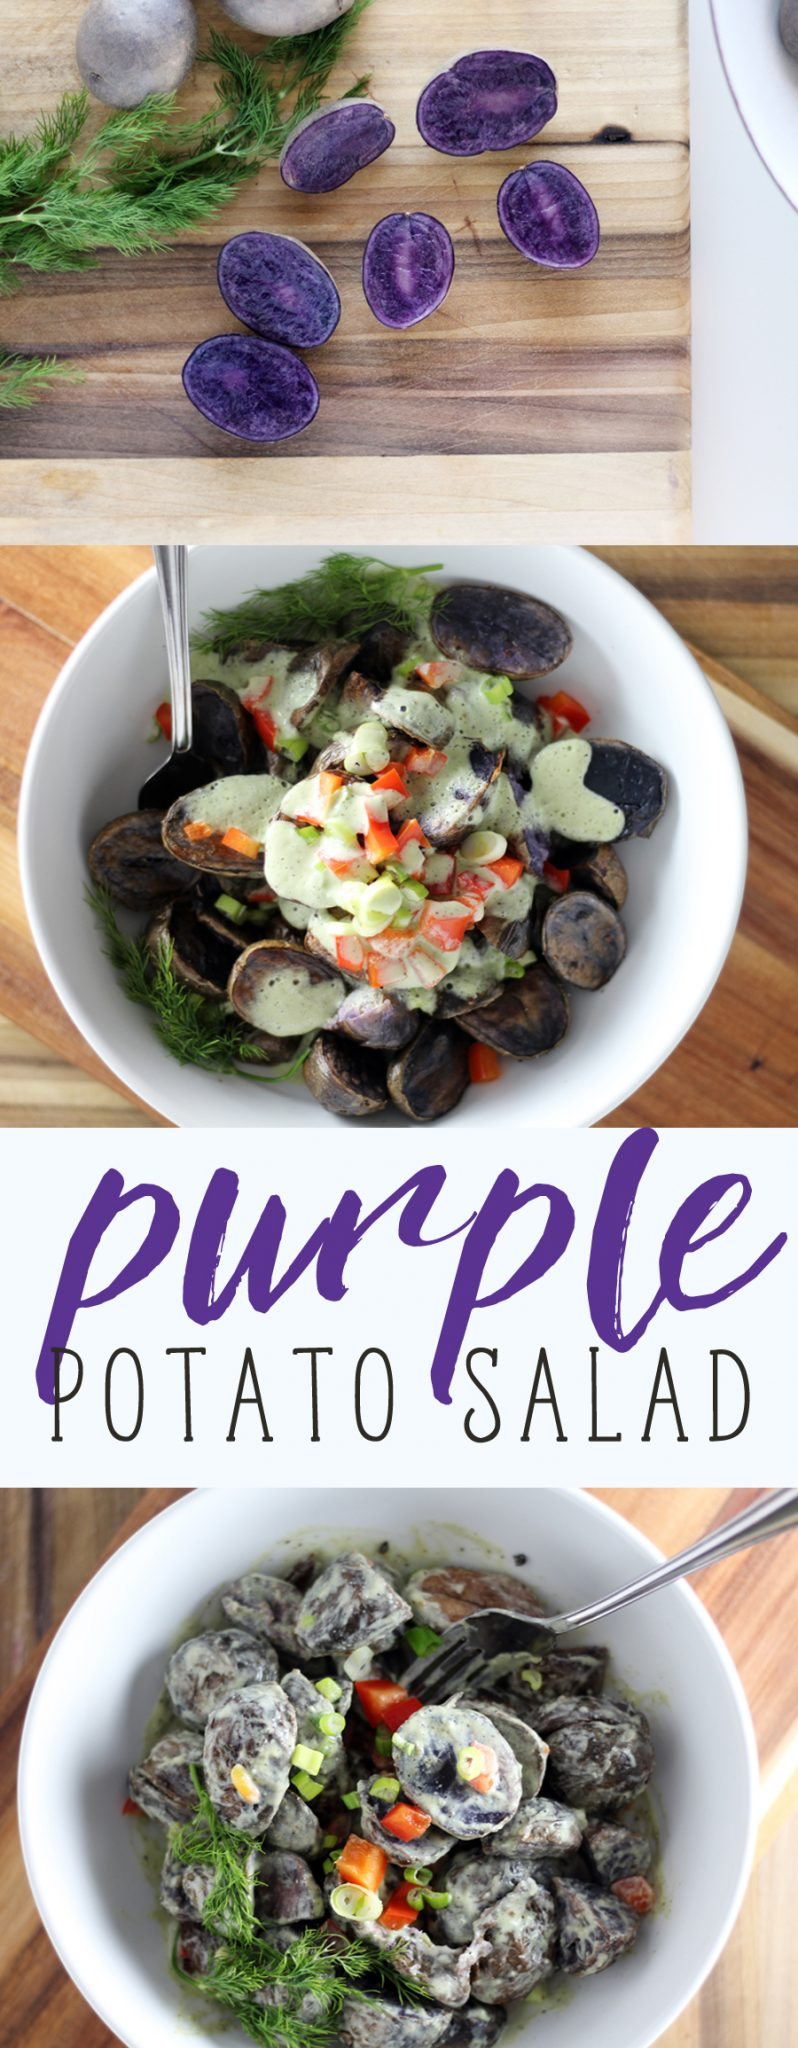 Purple Potato Salad is a tasty and colorful twist on a Southern classic side dish.